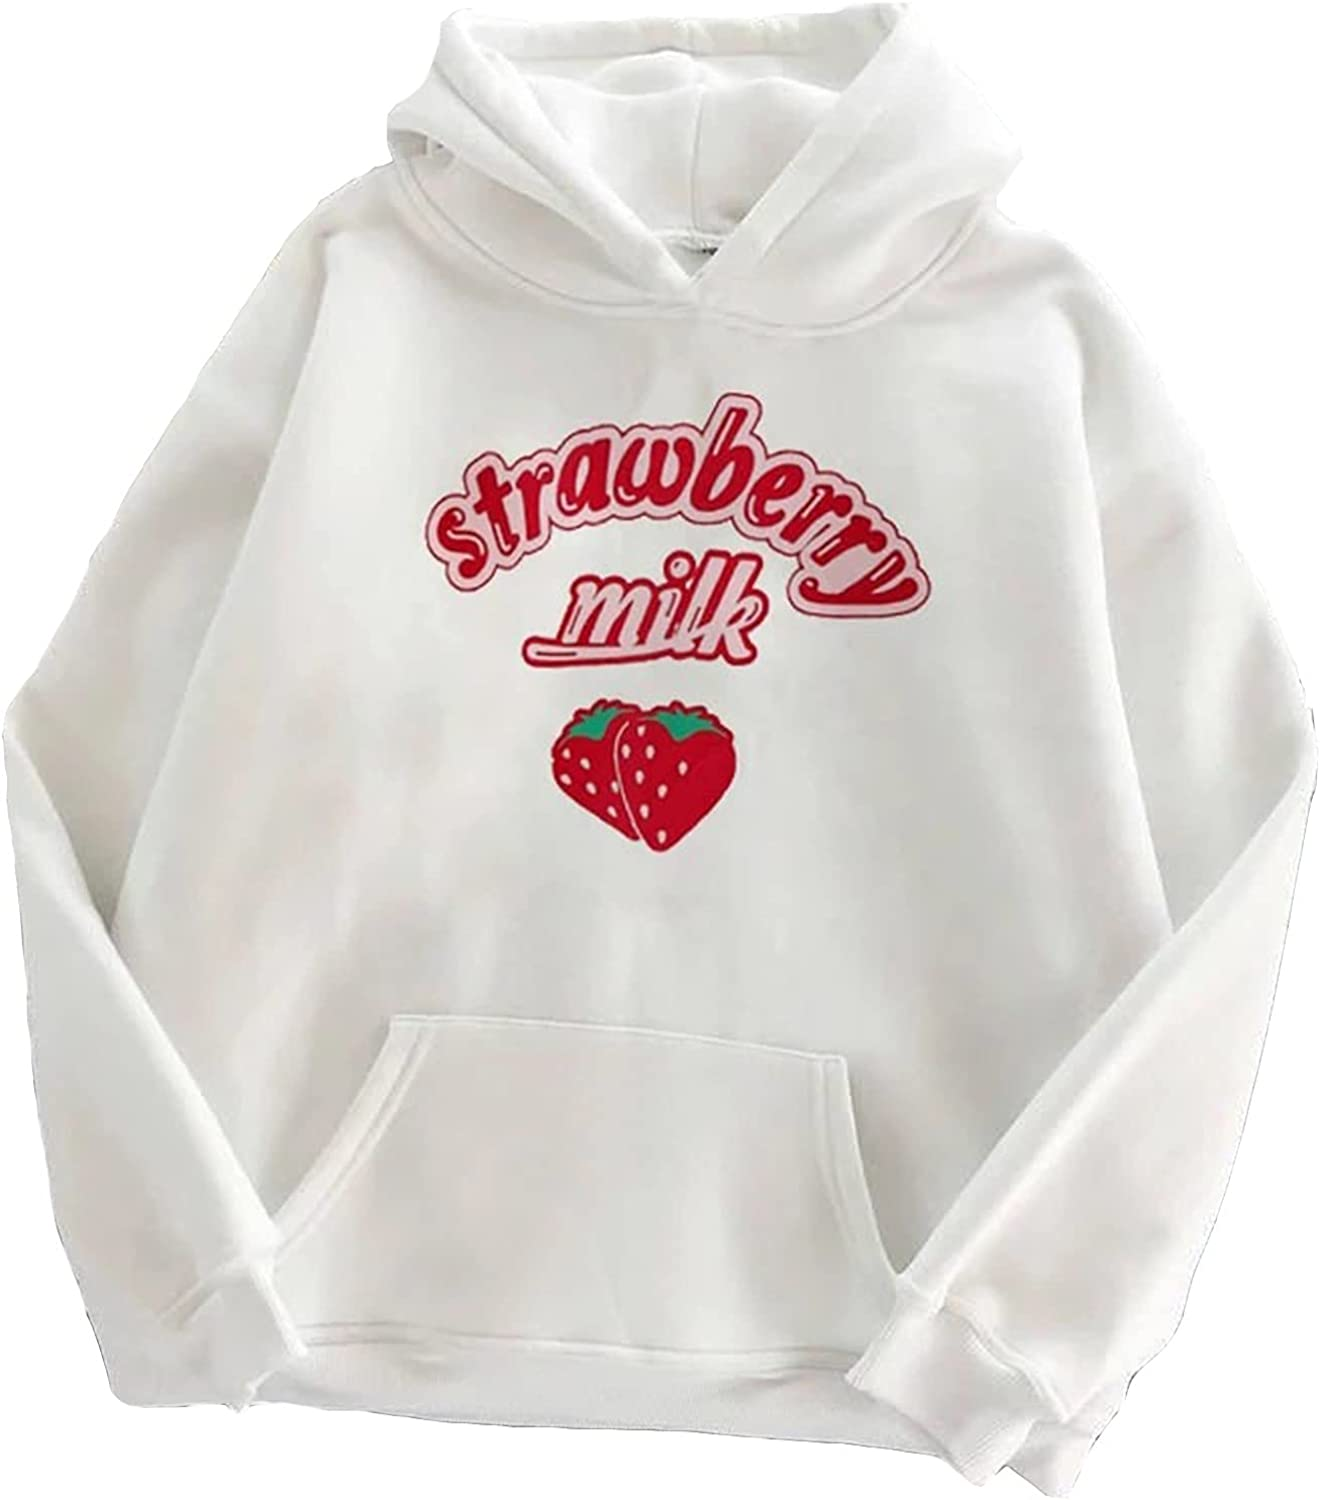 Bravetoshop Challenge the lowest price of Japan Hoodie Special price for a limited time Women Pullover Drawstr Graphic Strawberry